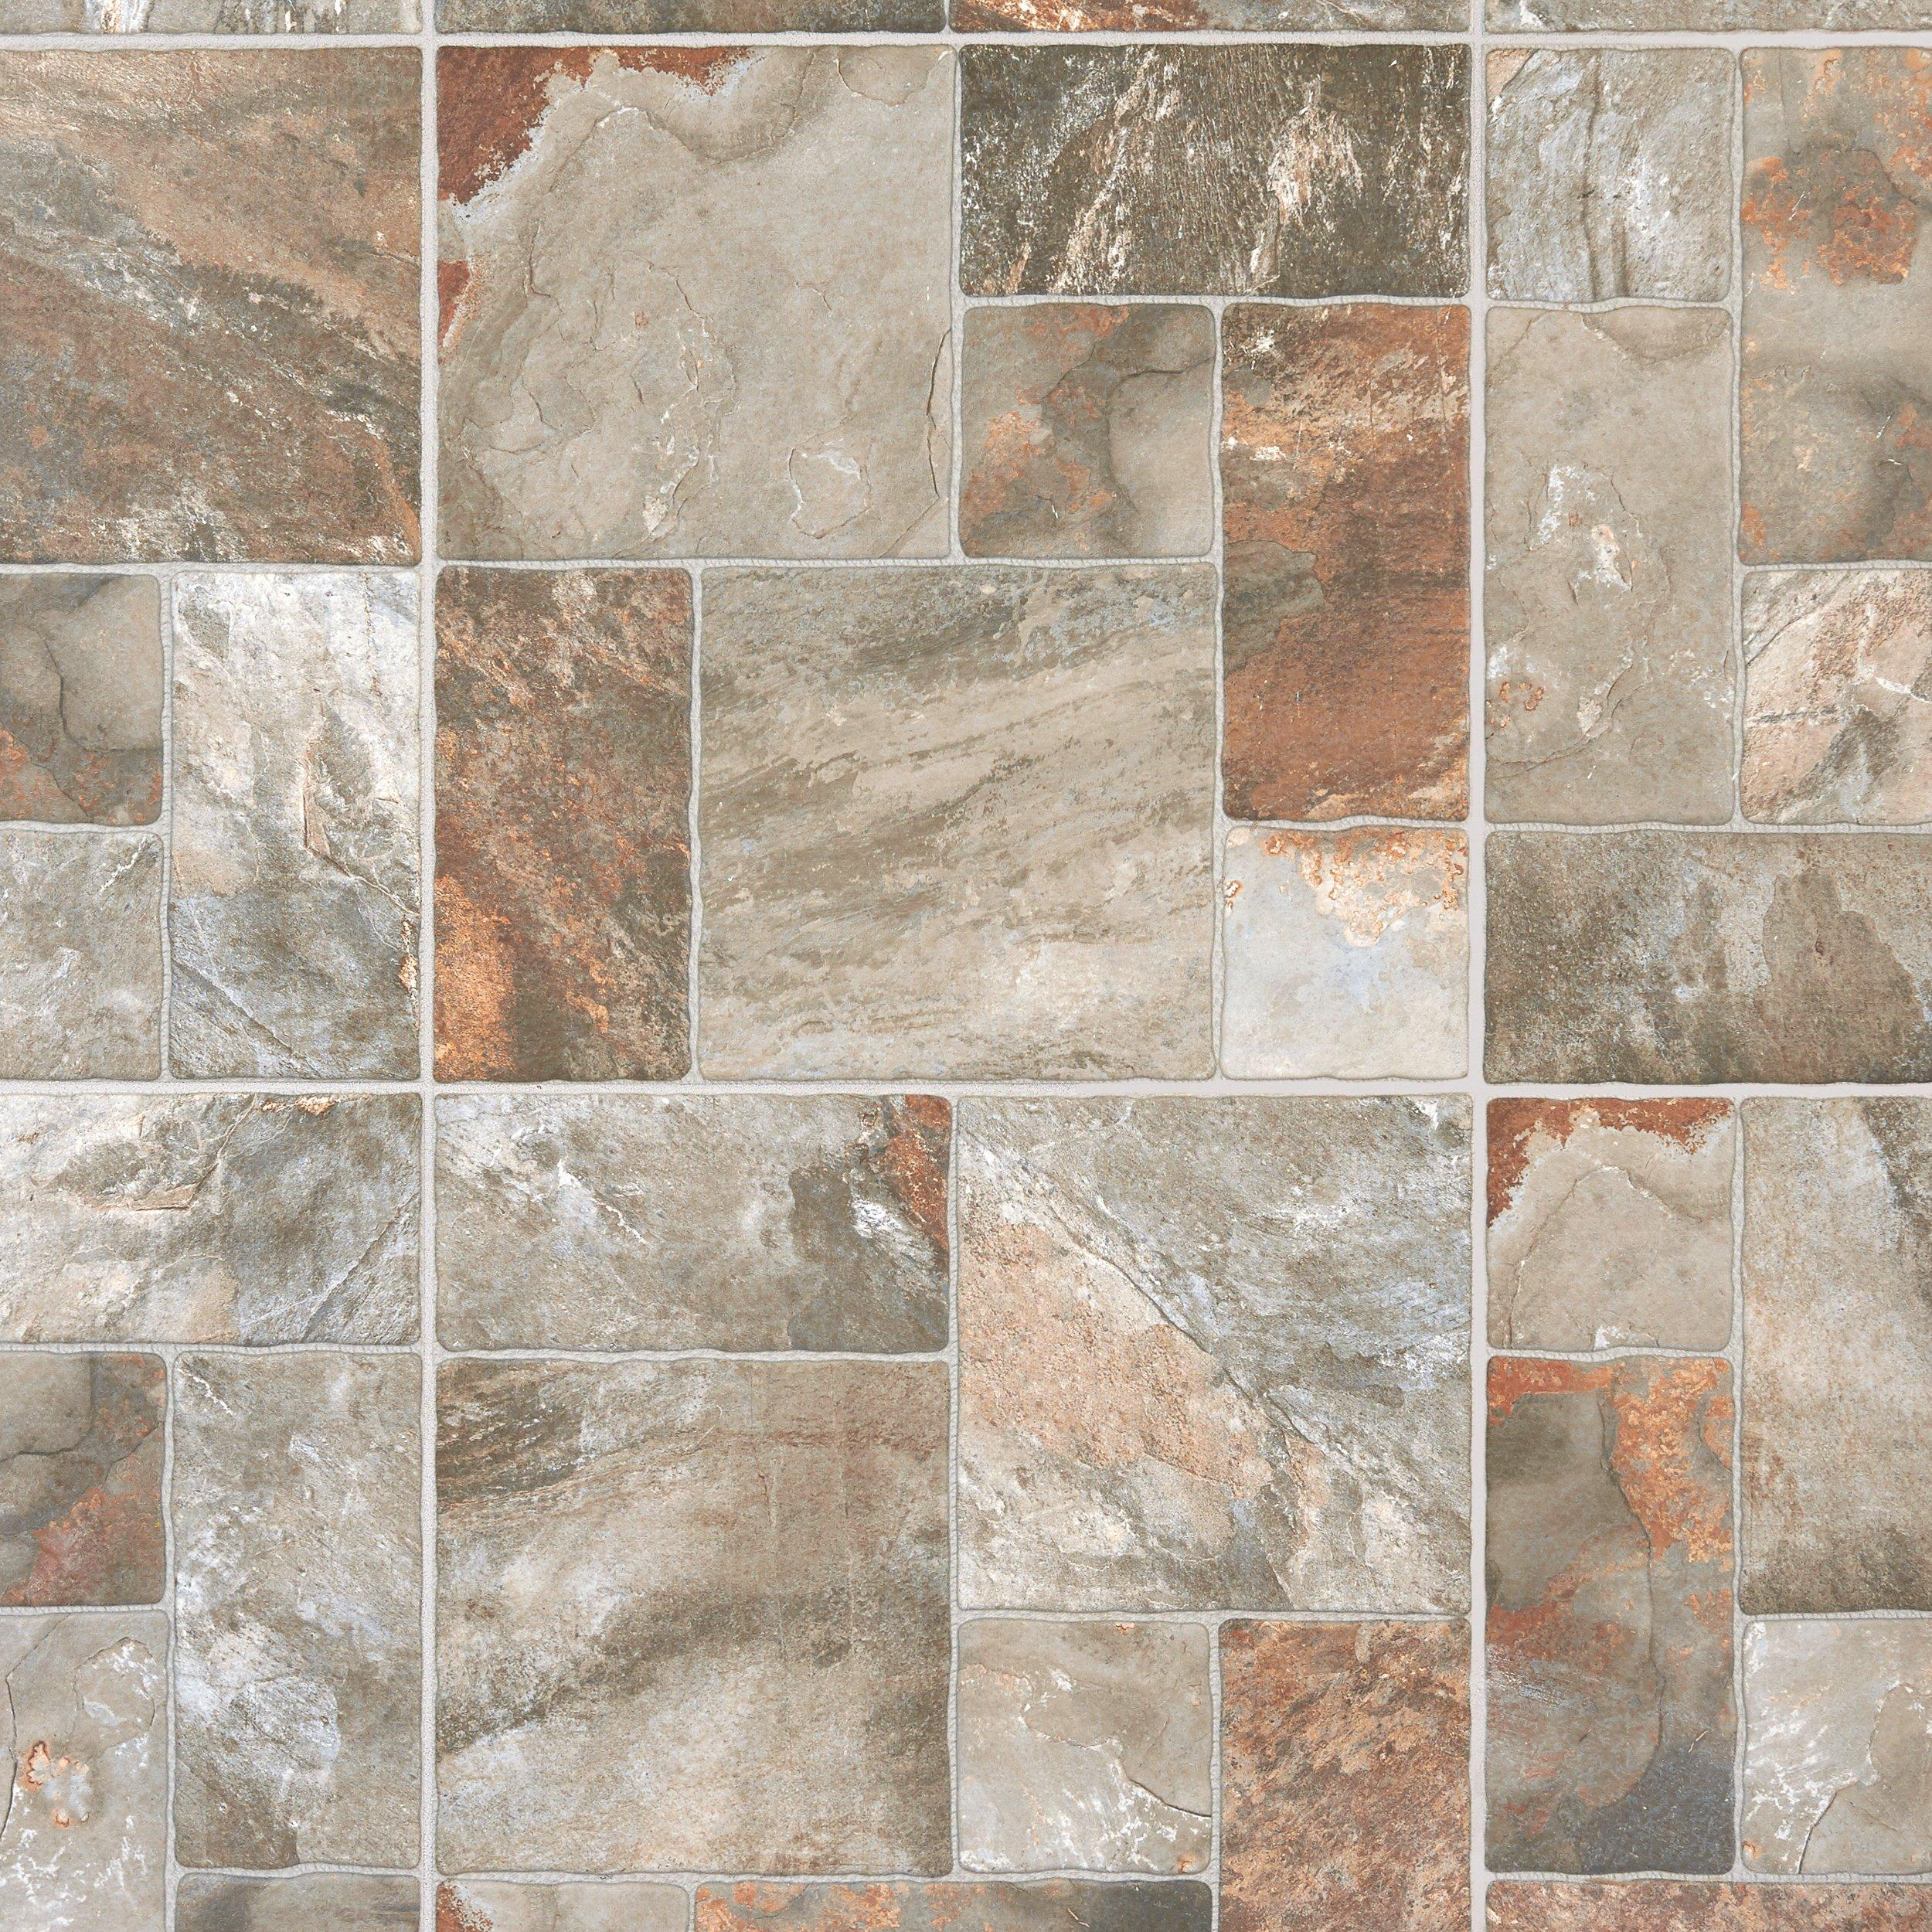 Cabinet And Stone City Tile Bathroom Floor Decor